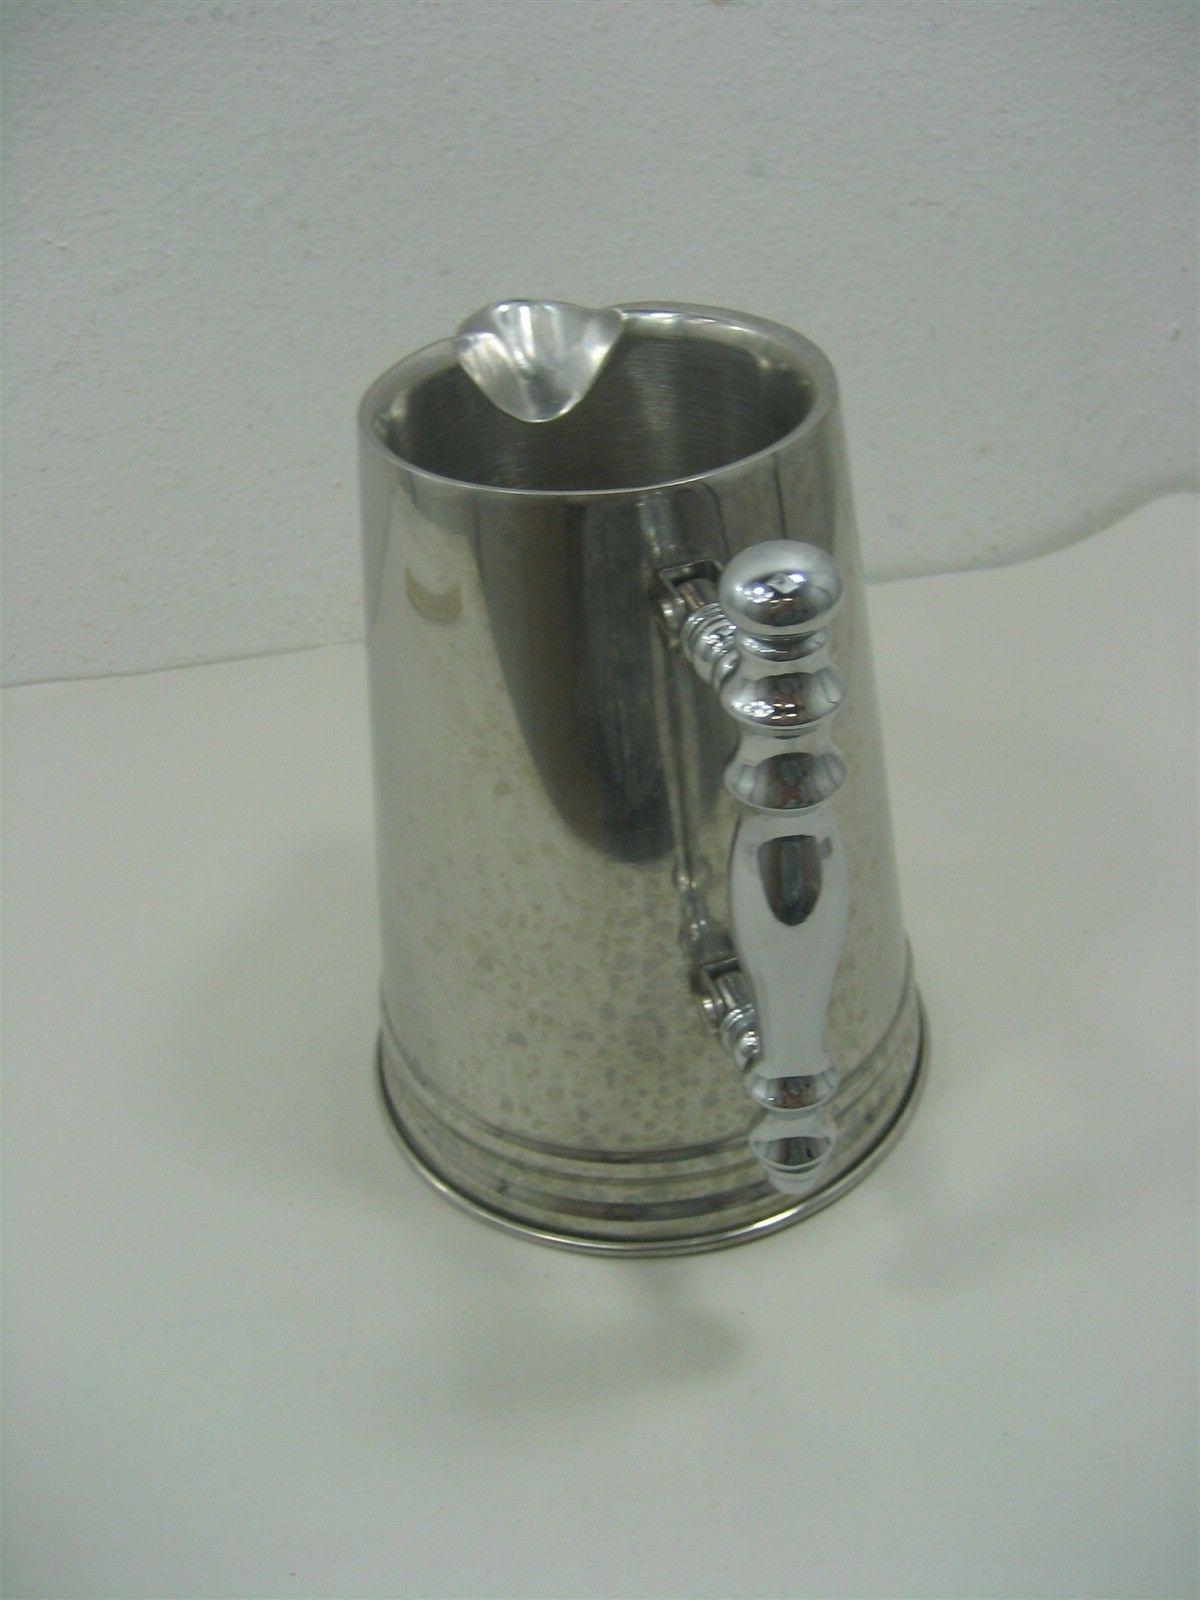 Vintage Steel Coffee Press By Mimi with